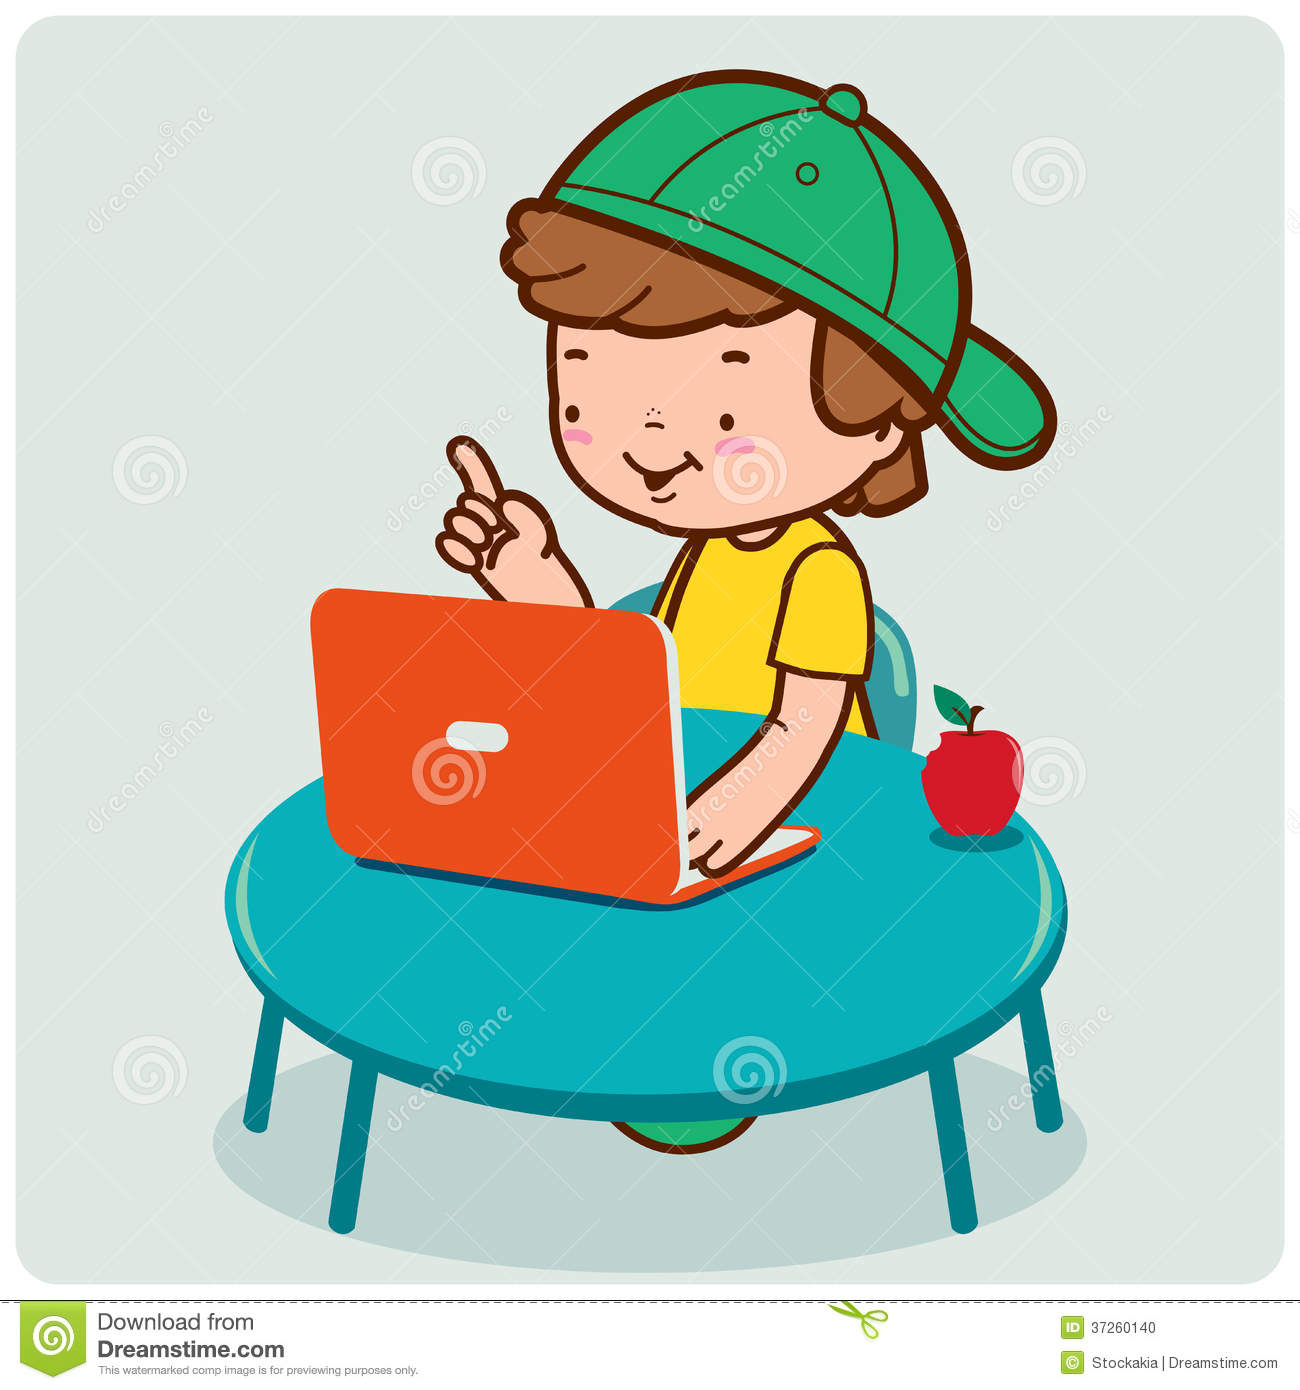 Boy using the computer stock vector. Illustration of table ...